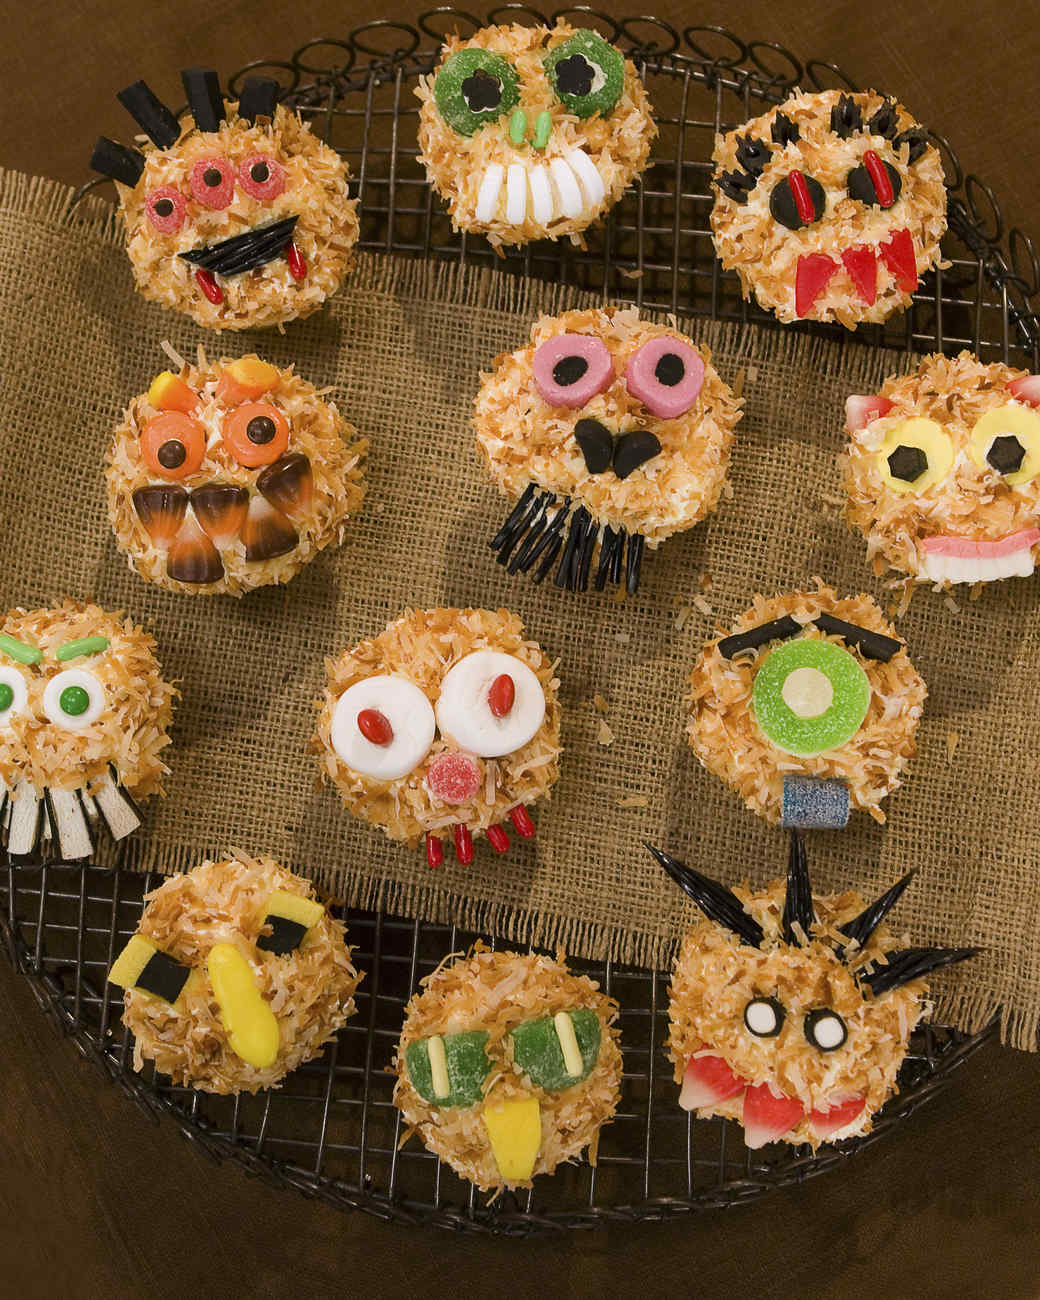 halloween cupcake recipes martha stewart - Halloween Decorations Cupcakes